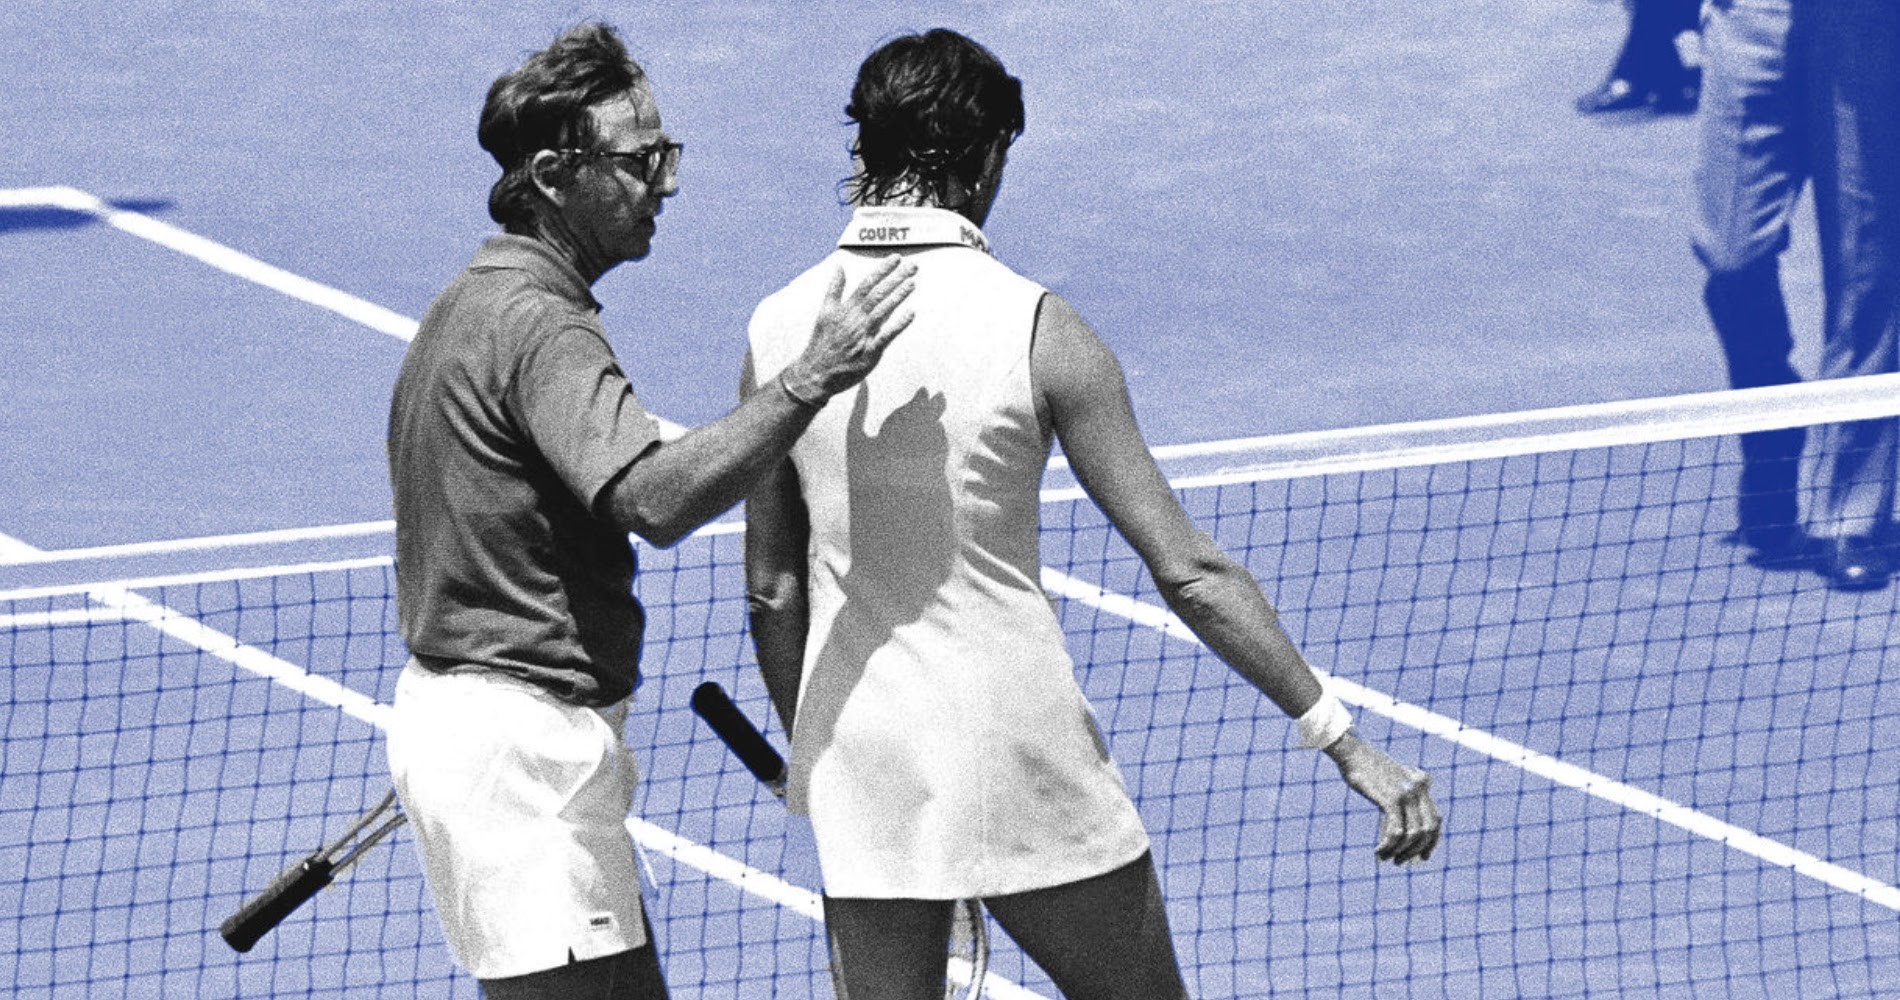 On this day Battle of the Sexes 13_5